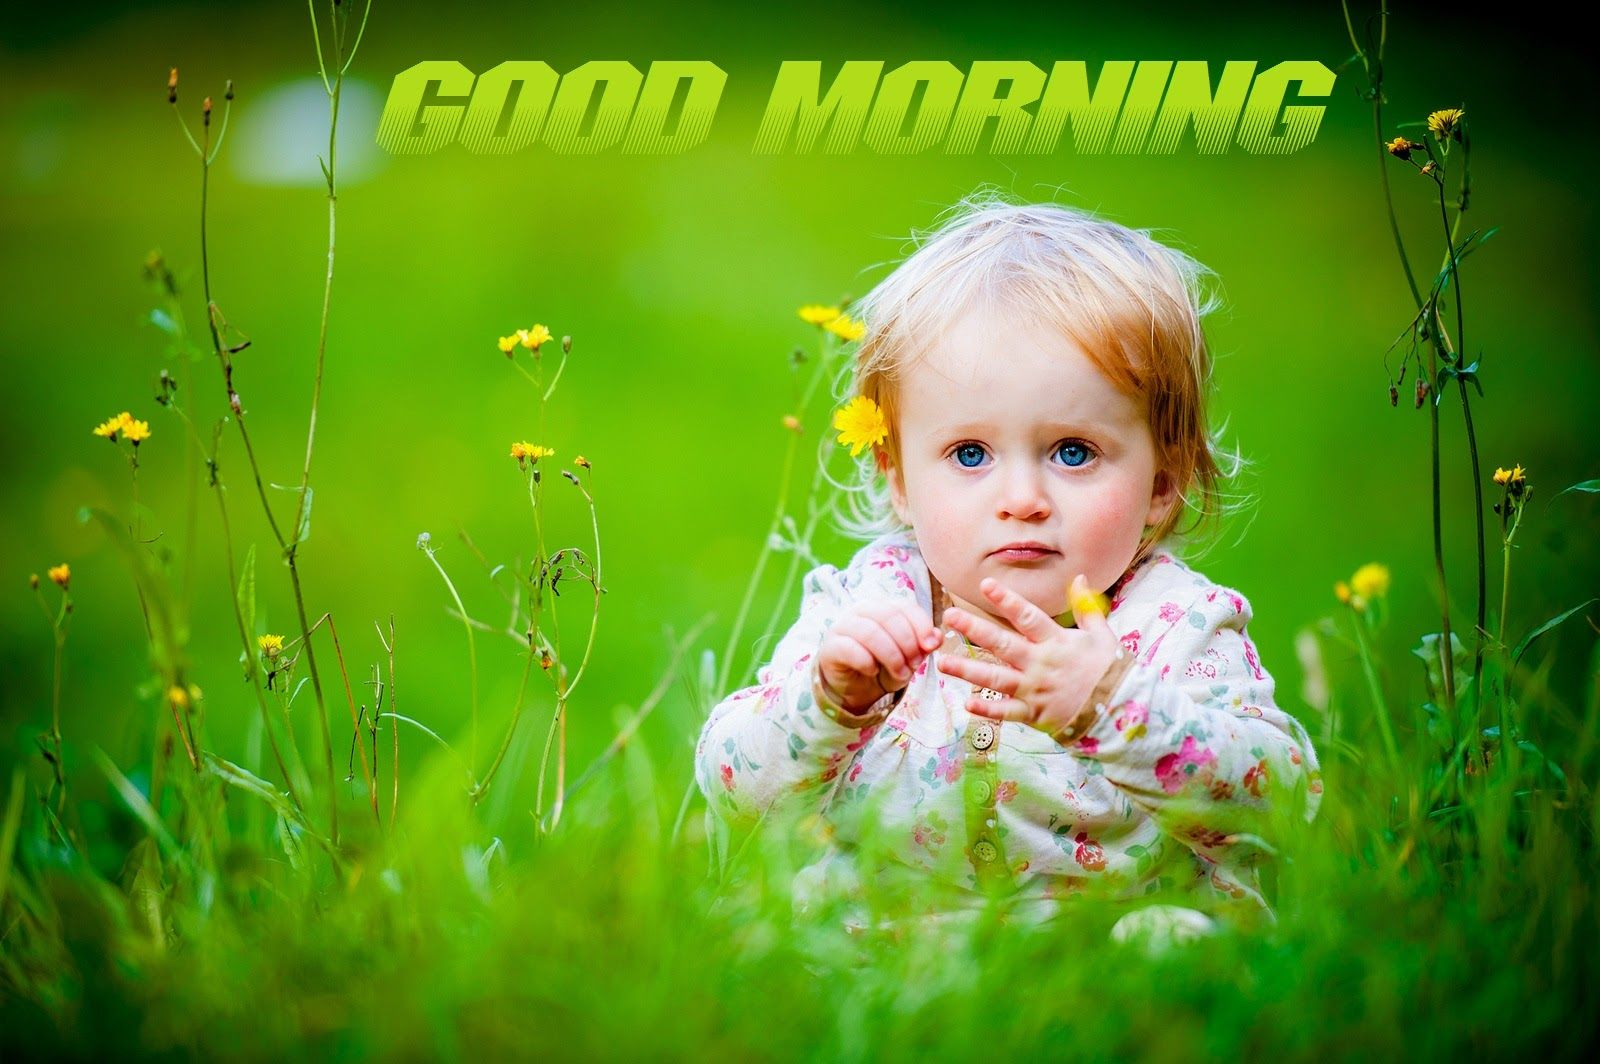 Good Morning Baby Quote : Download good morning baby images wallpapers pictures